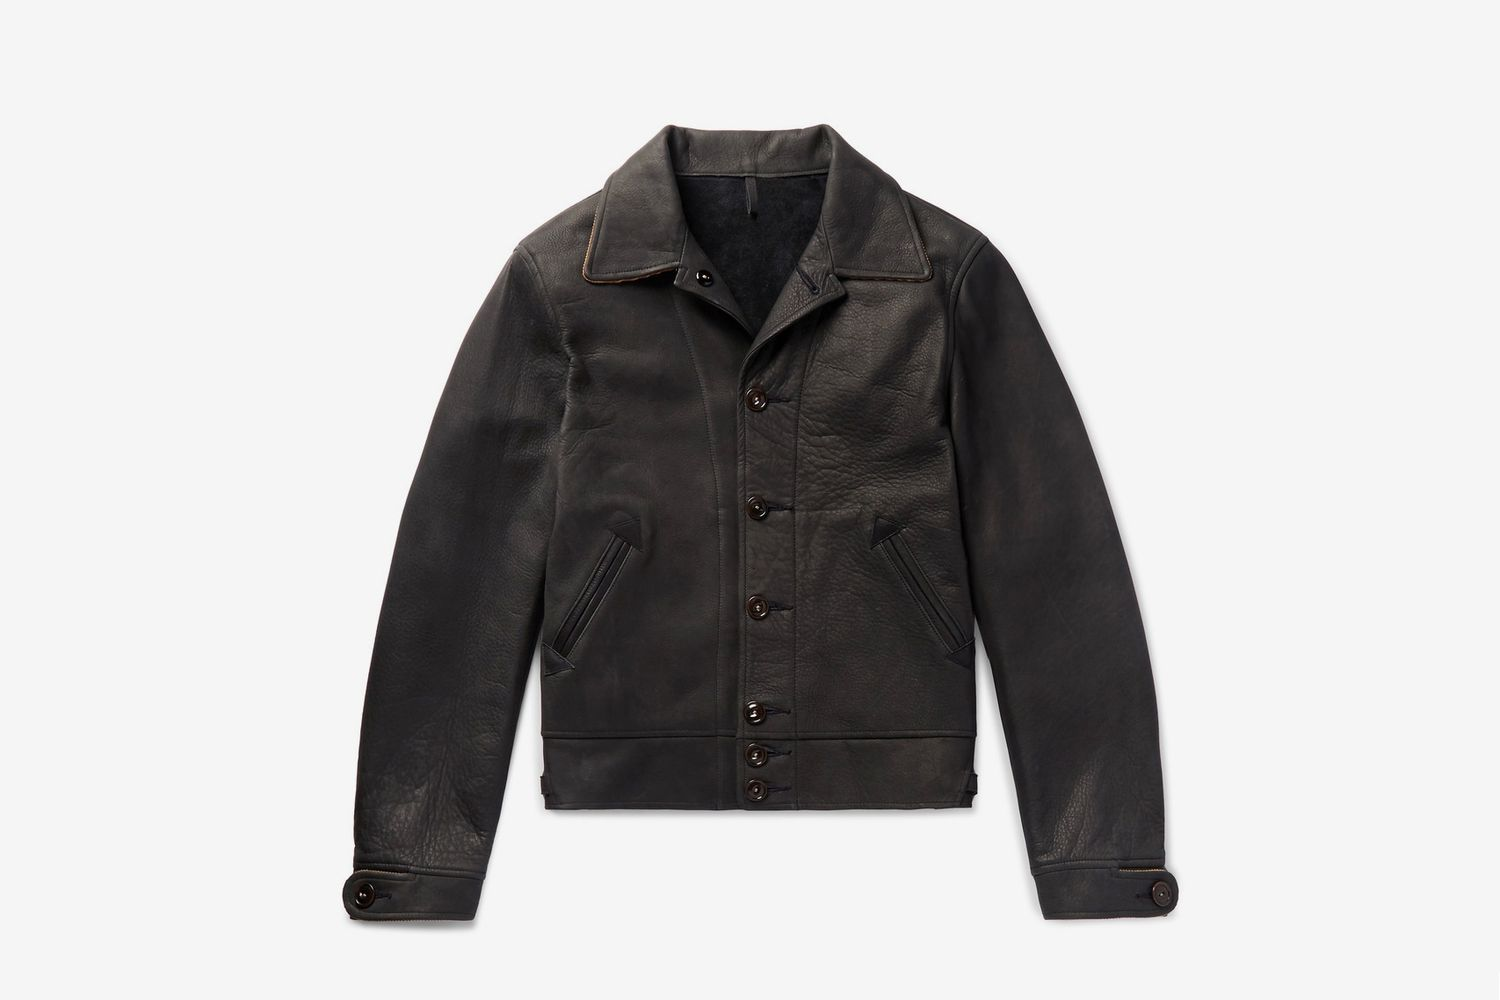 Jack's Statesman Corduroy-Trimmed Leather Jacket